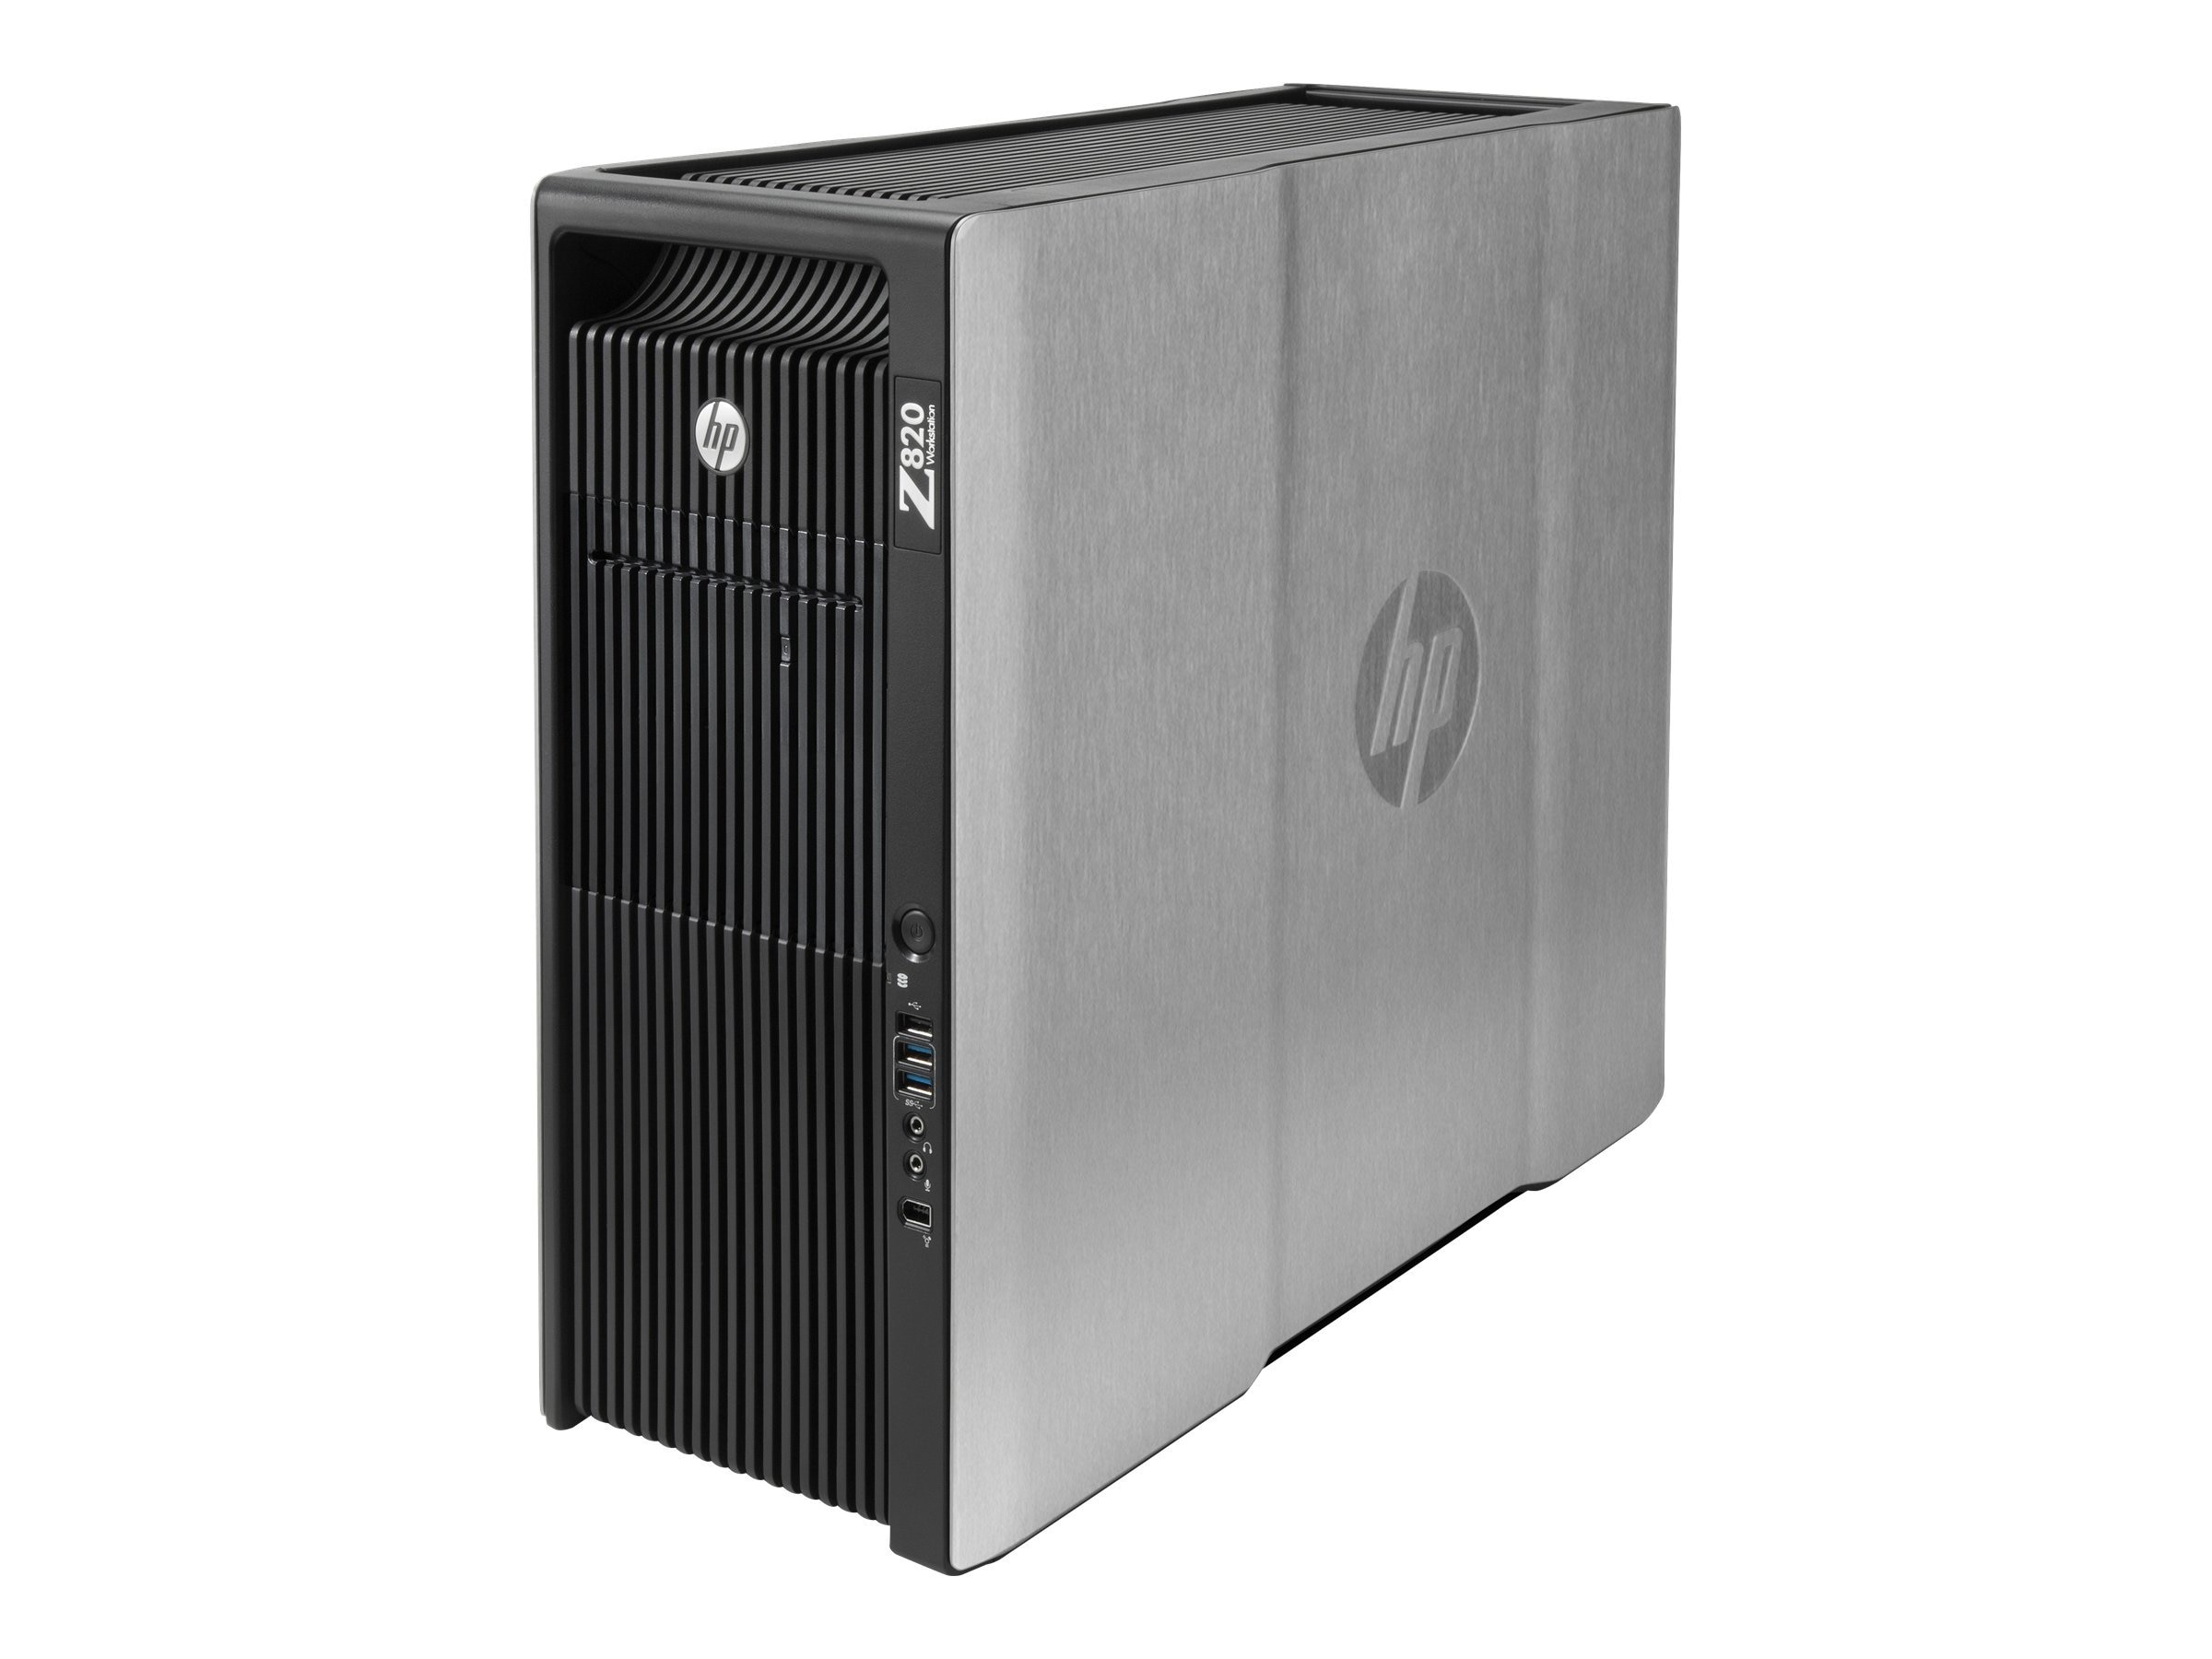 HP Z820 RMT Xeon QC E5-2643 3.3GHz 64GB 600GB SAS, J8M56US#ABA, 17488233, Workstations